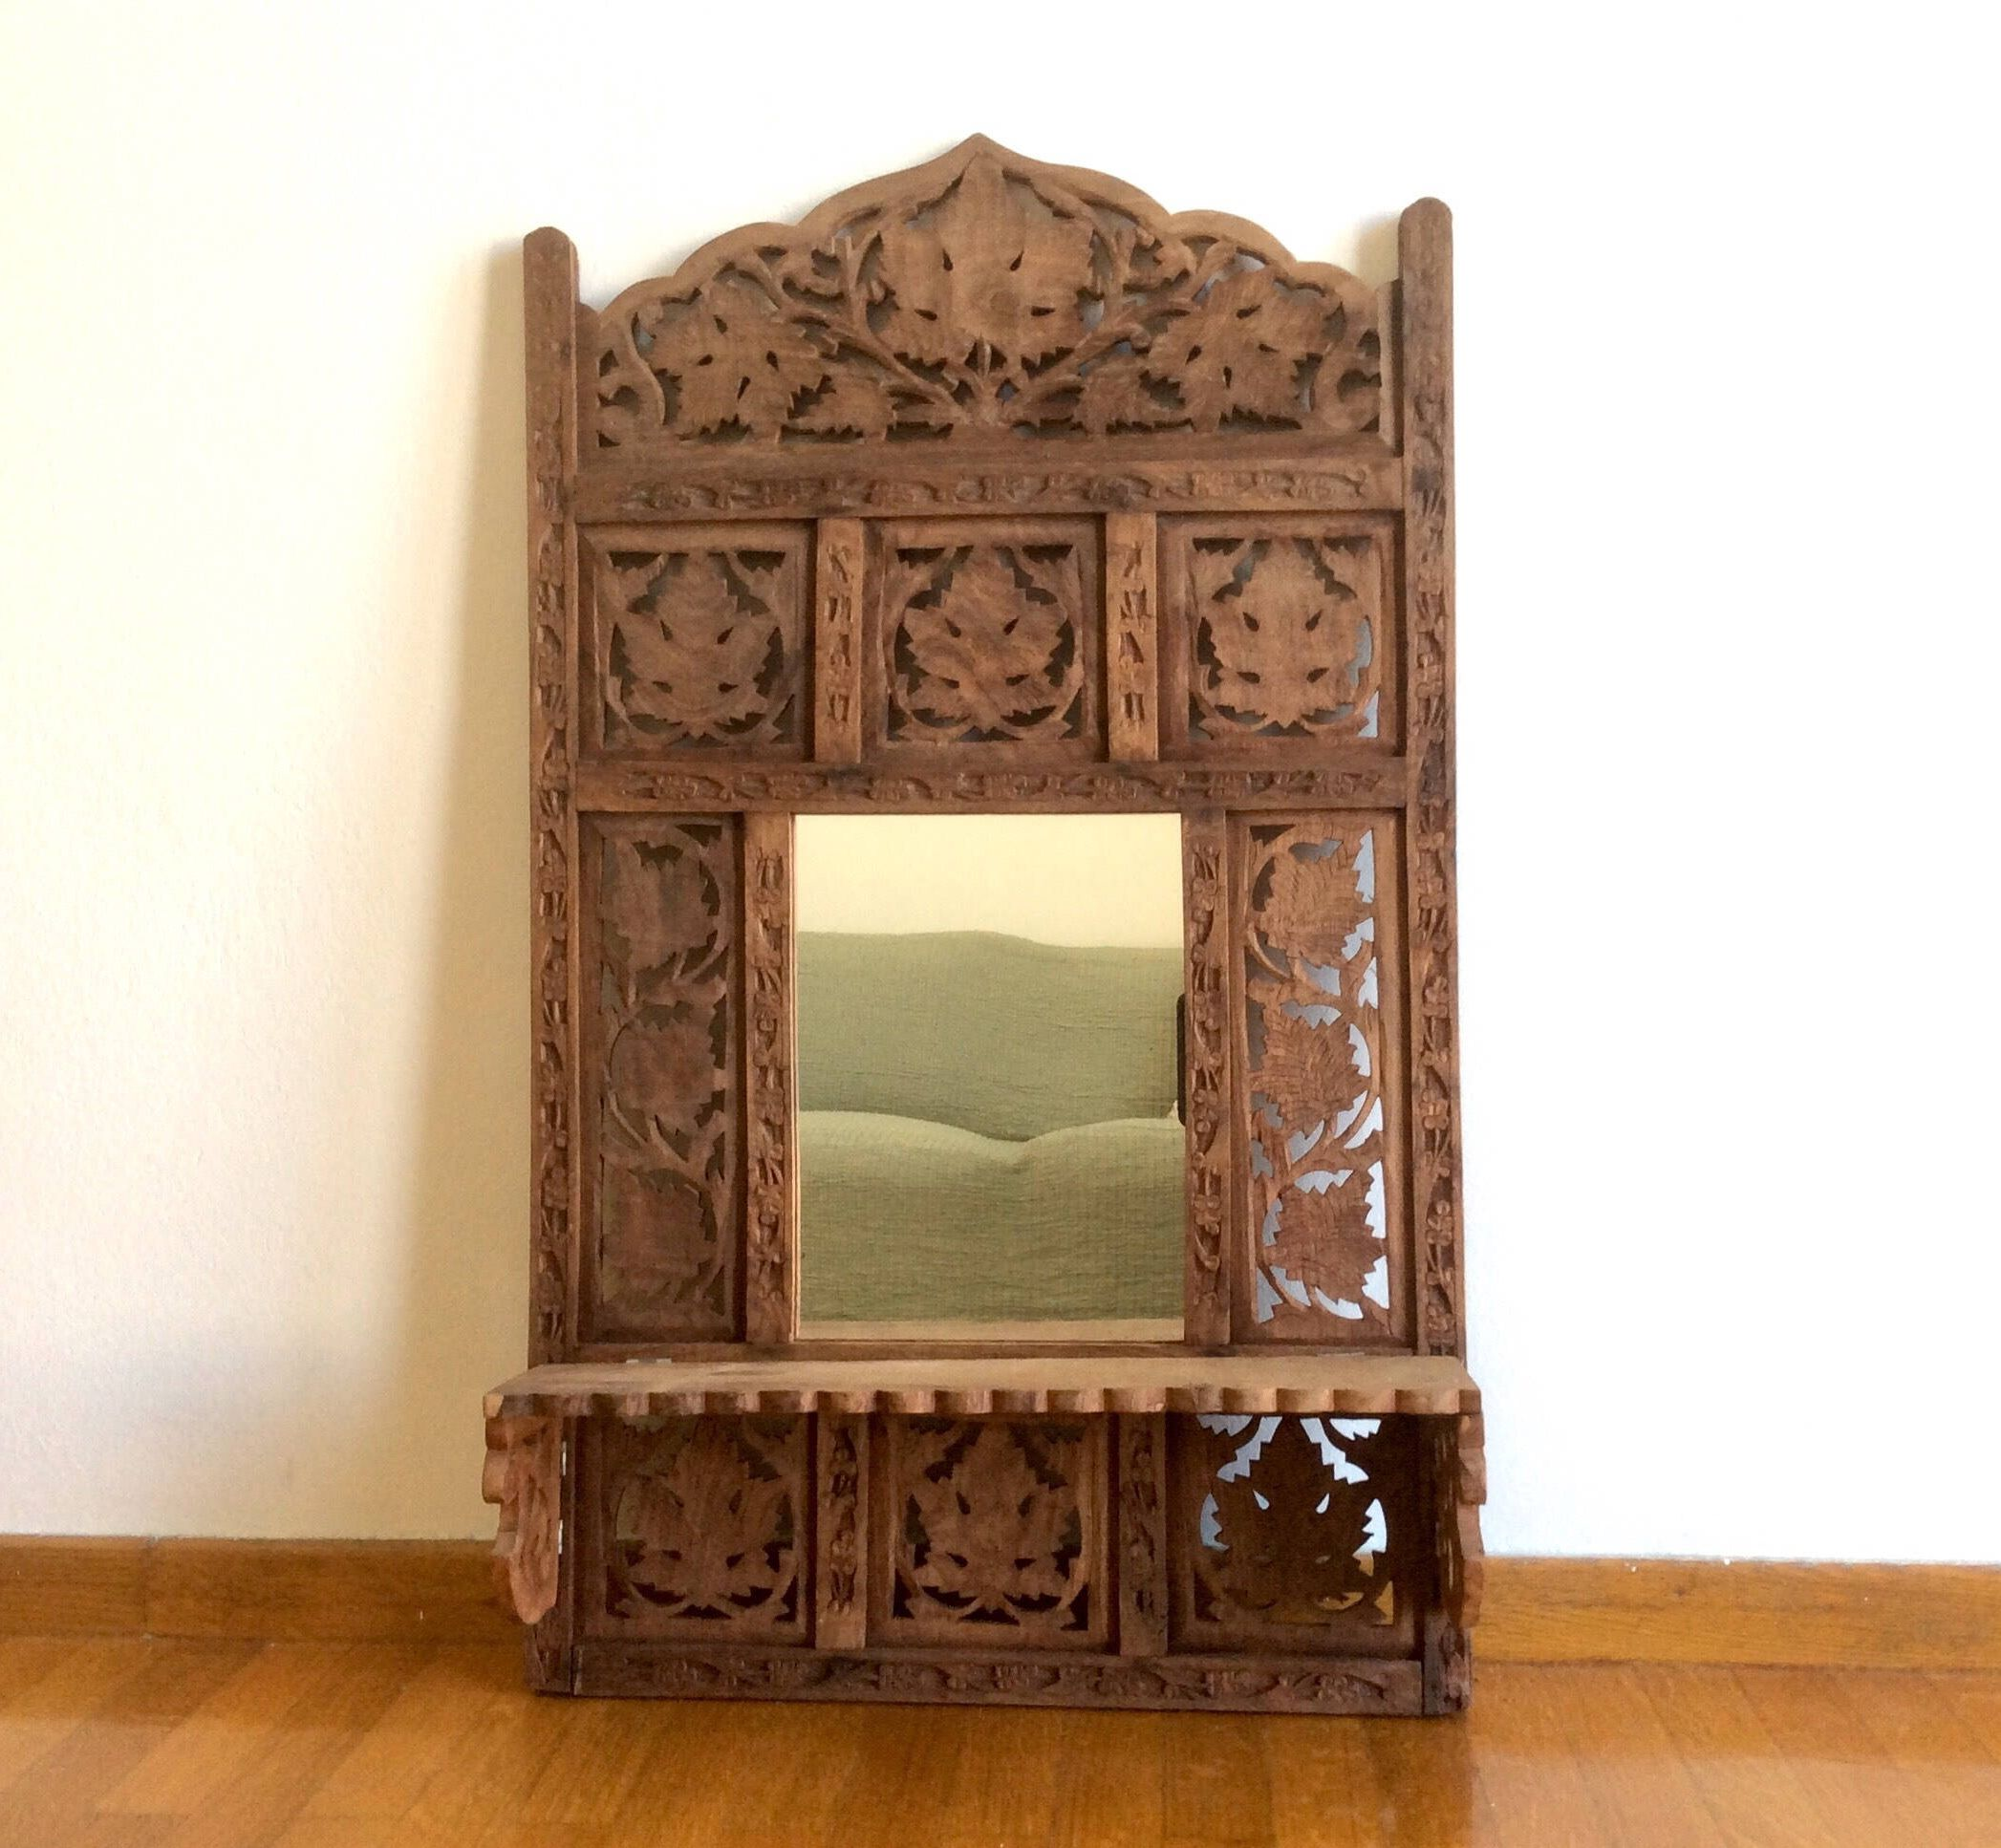 Antique Hand Carved Wood Ornate Wall Mirror With Shelf Etsy Wall Mirror With Shelf Wall Shelf Decor Mirror Wall